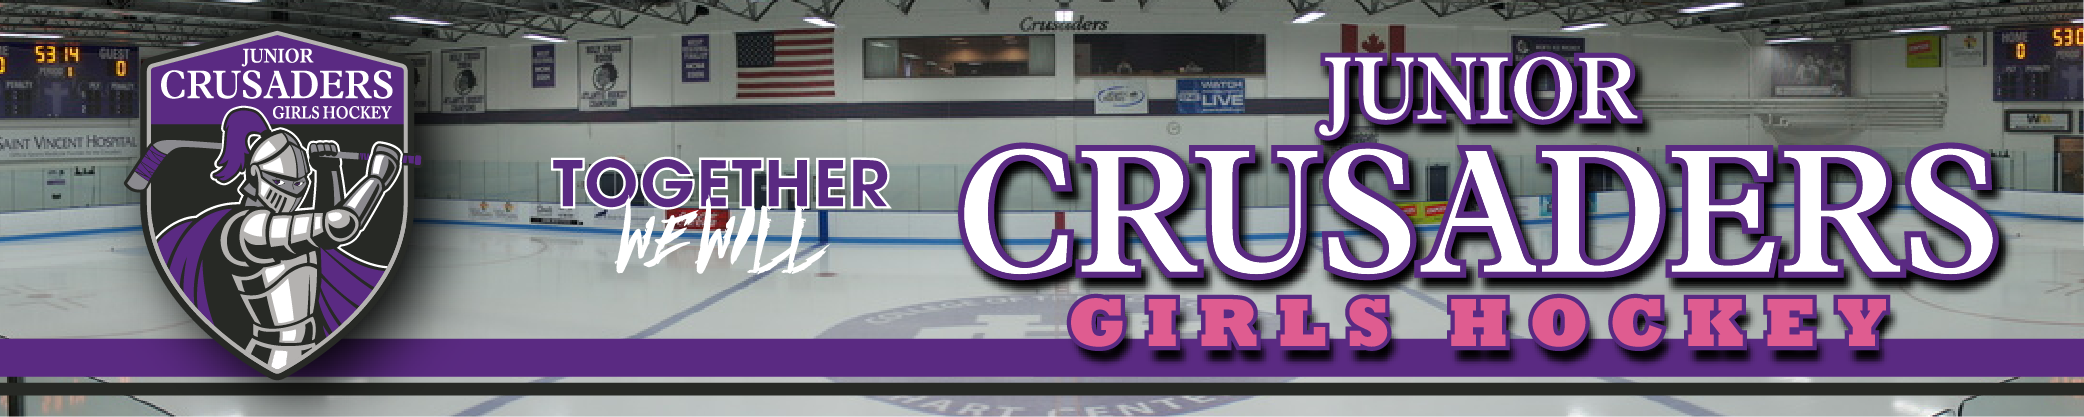 Junior Crusaders Girls Hockey, Hockey, Goal, Rink